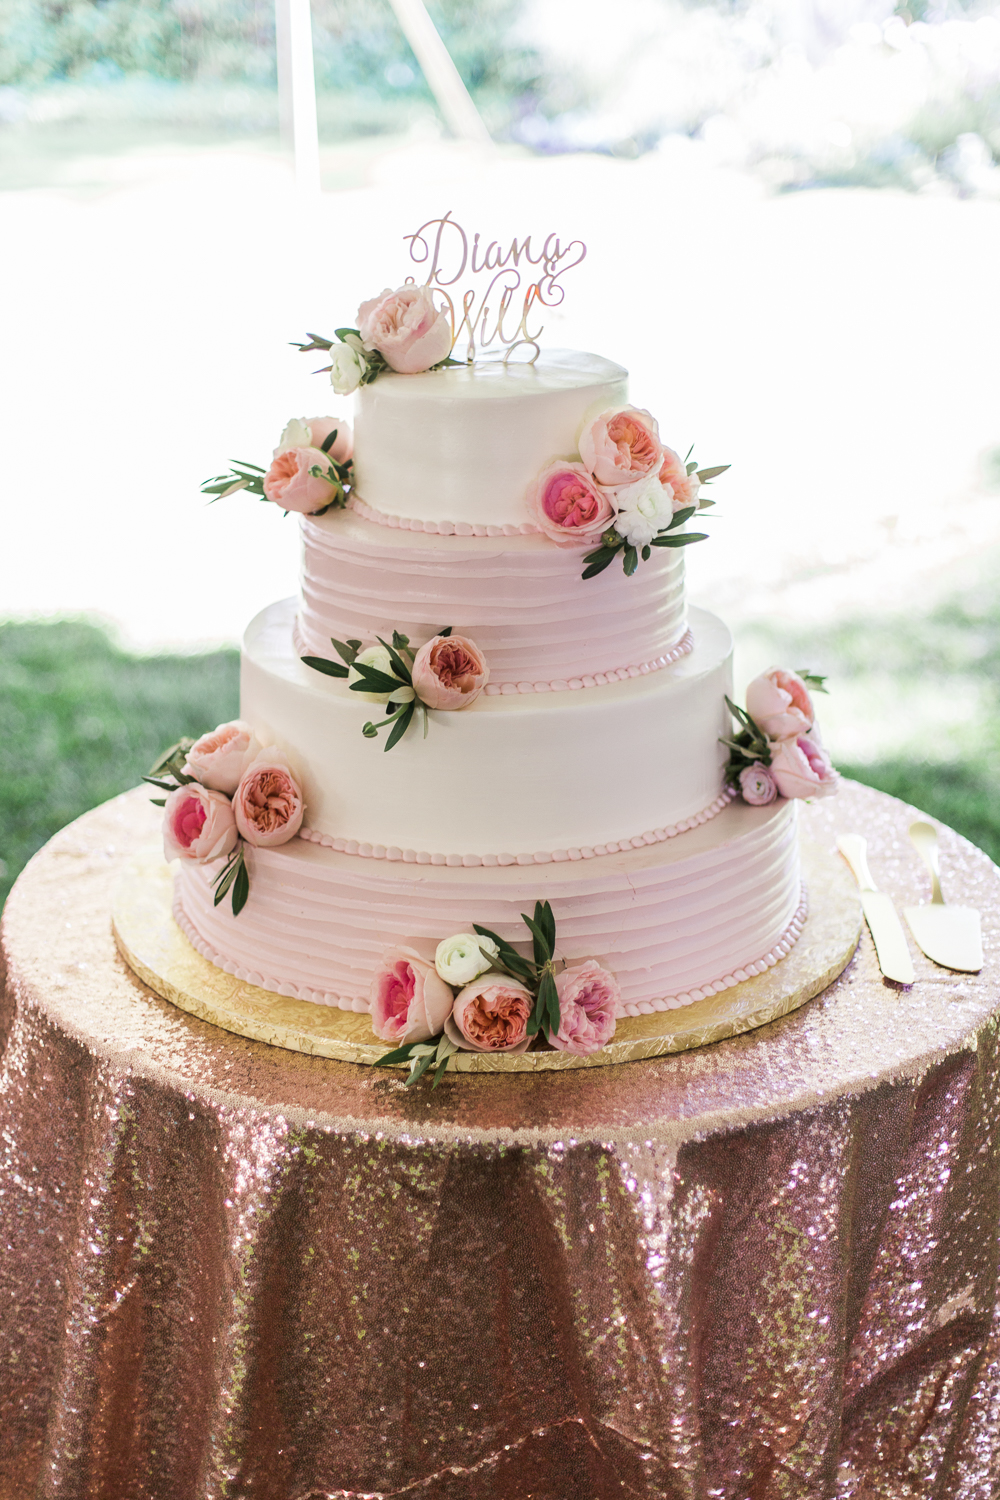 elm-bank-garden-wedding-cake-2